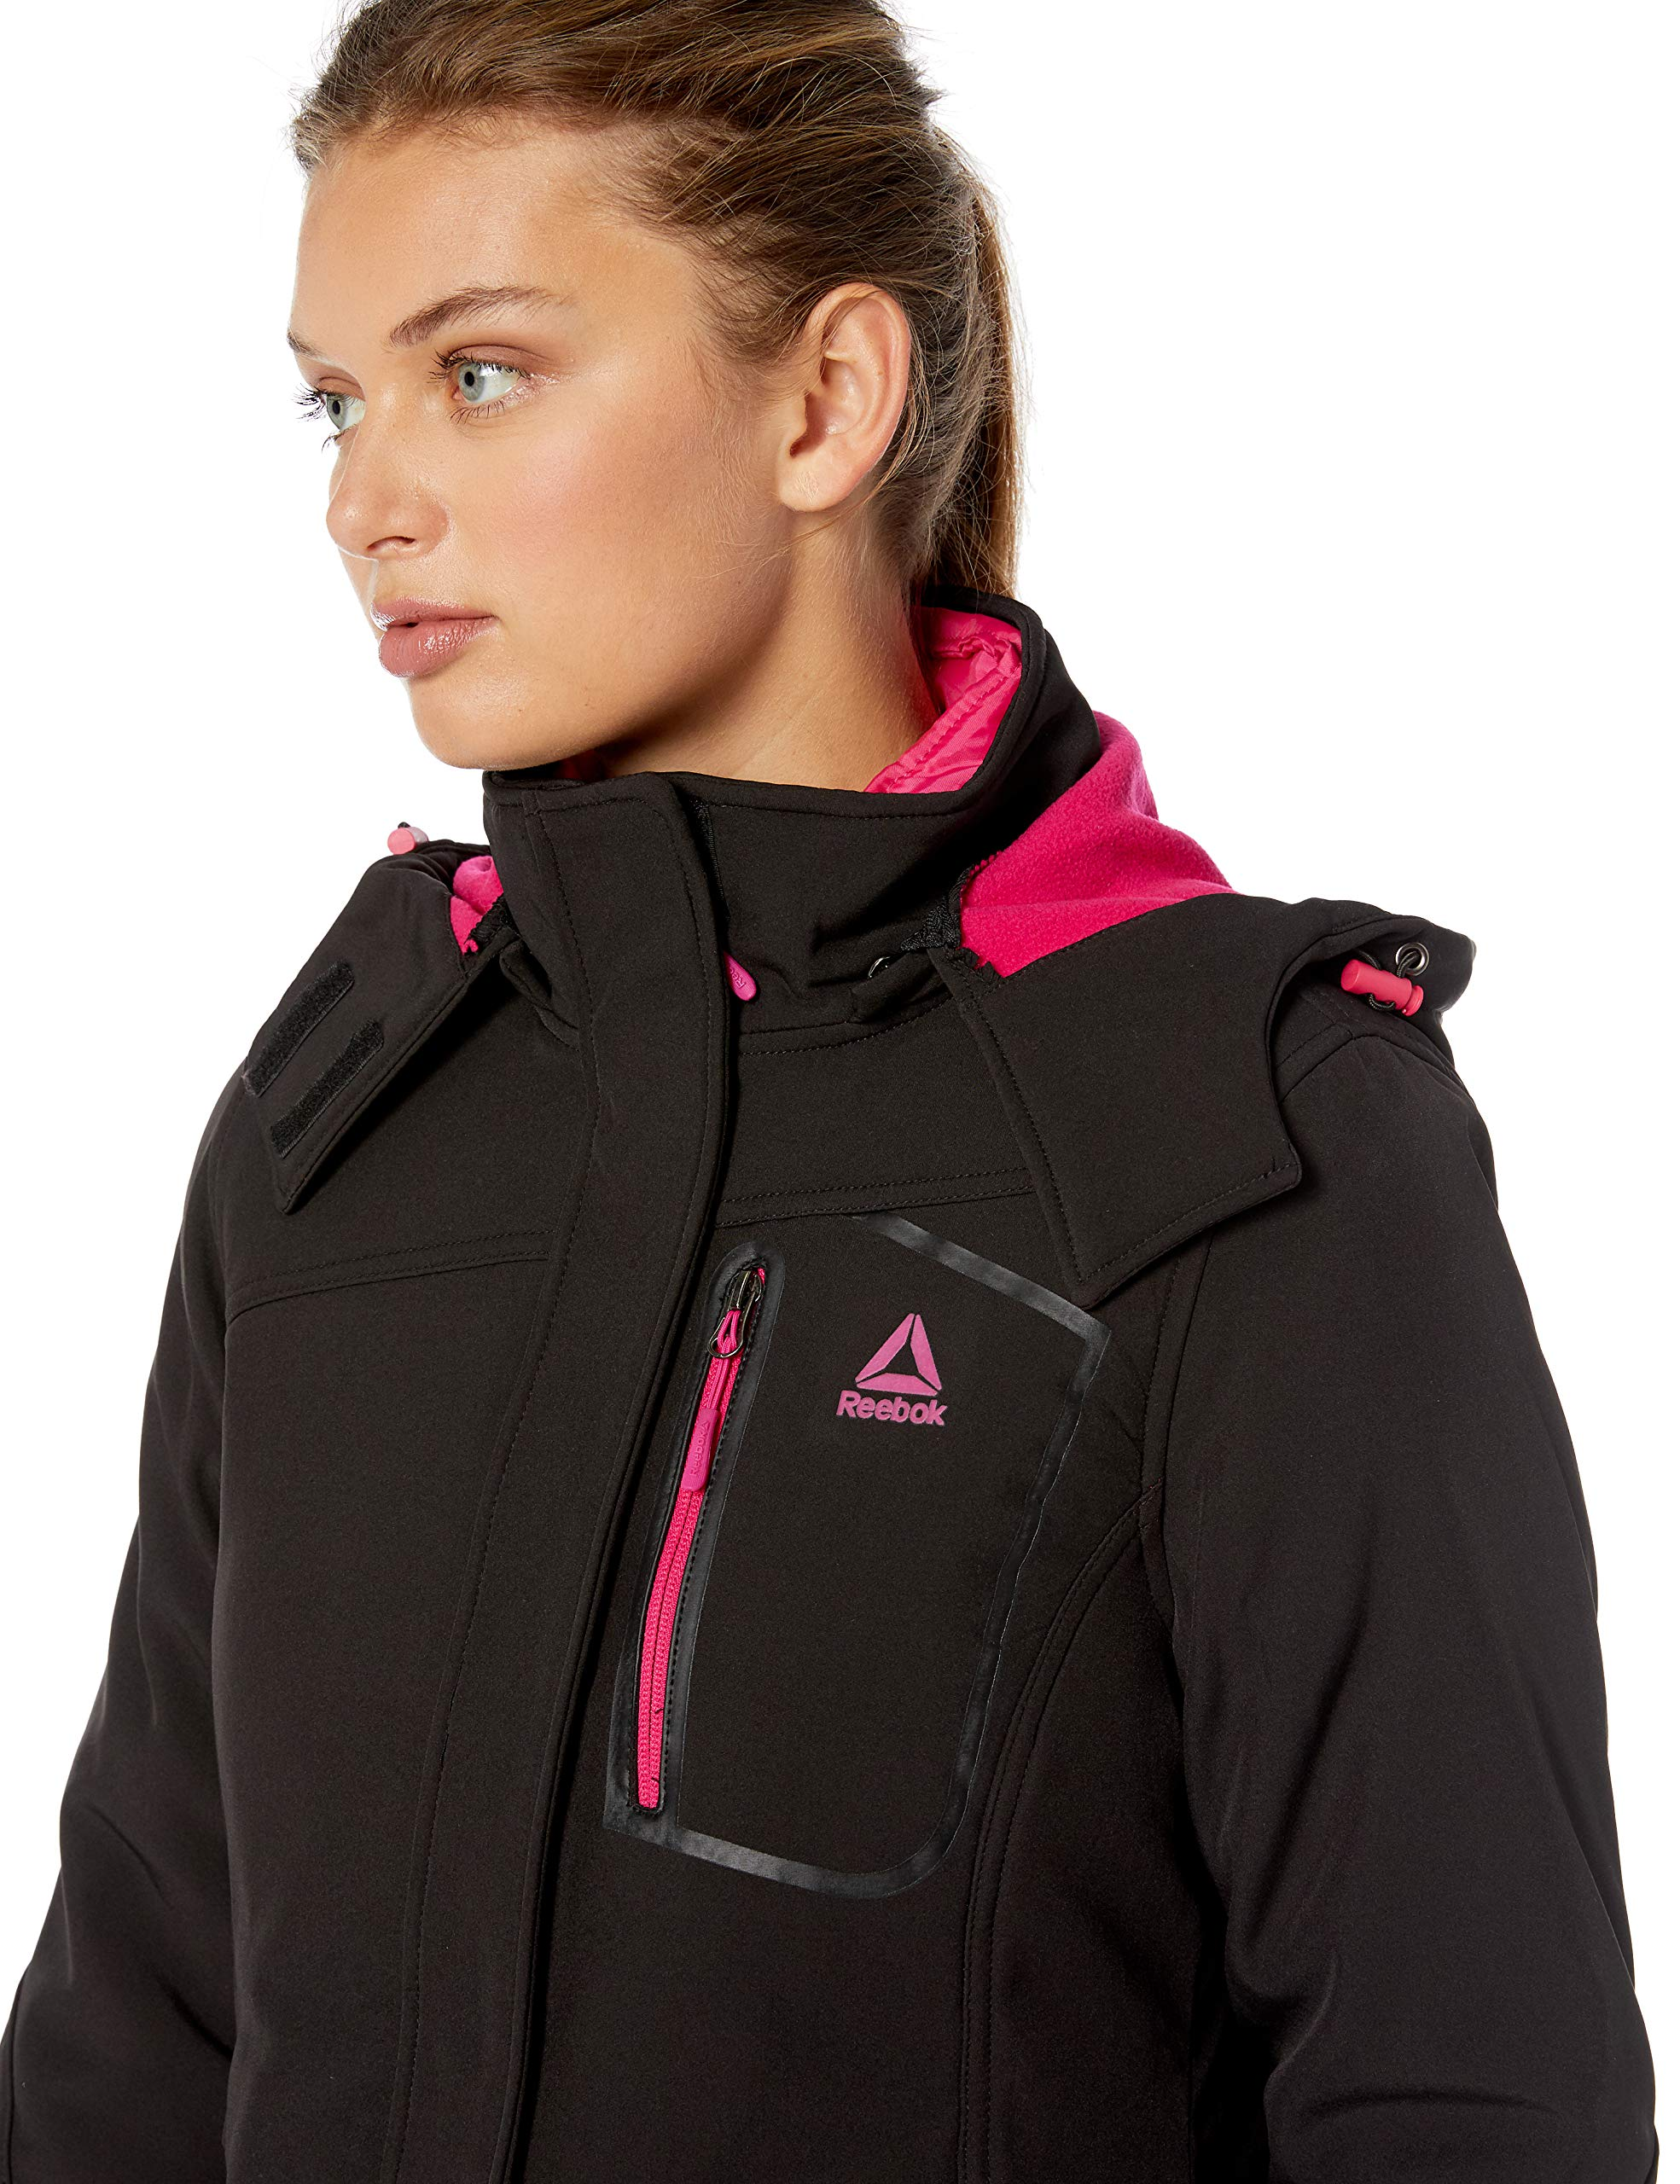 annorlunda super billigt speical-erbjudande Jackets & Coats Sports & Outdoors Reebok Womens Systems Active ...